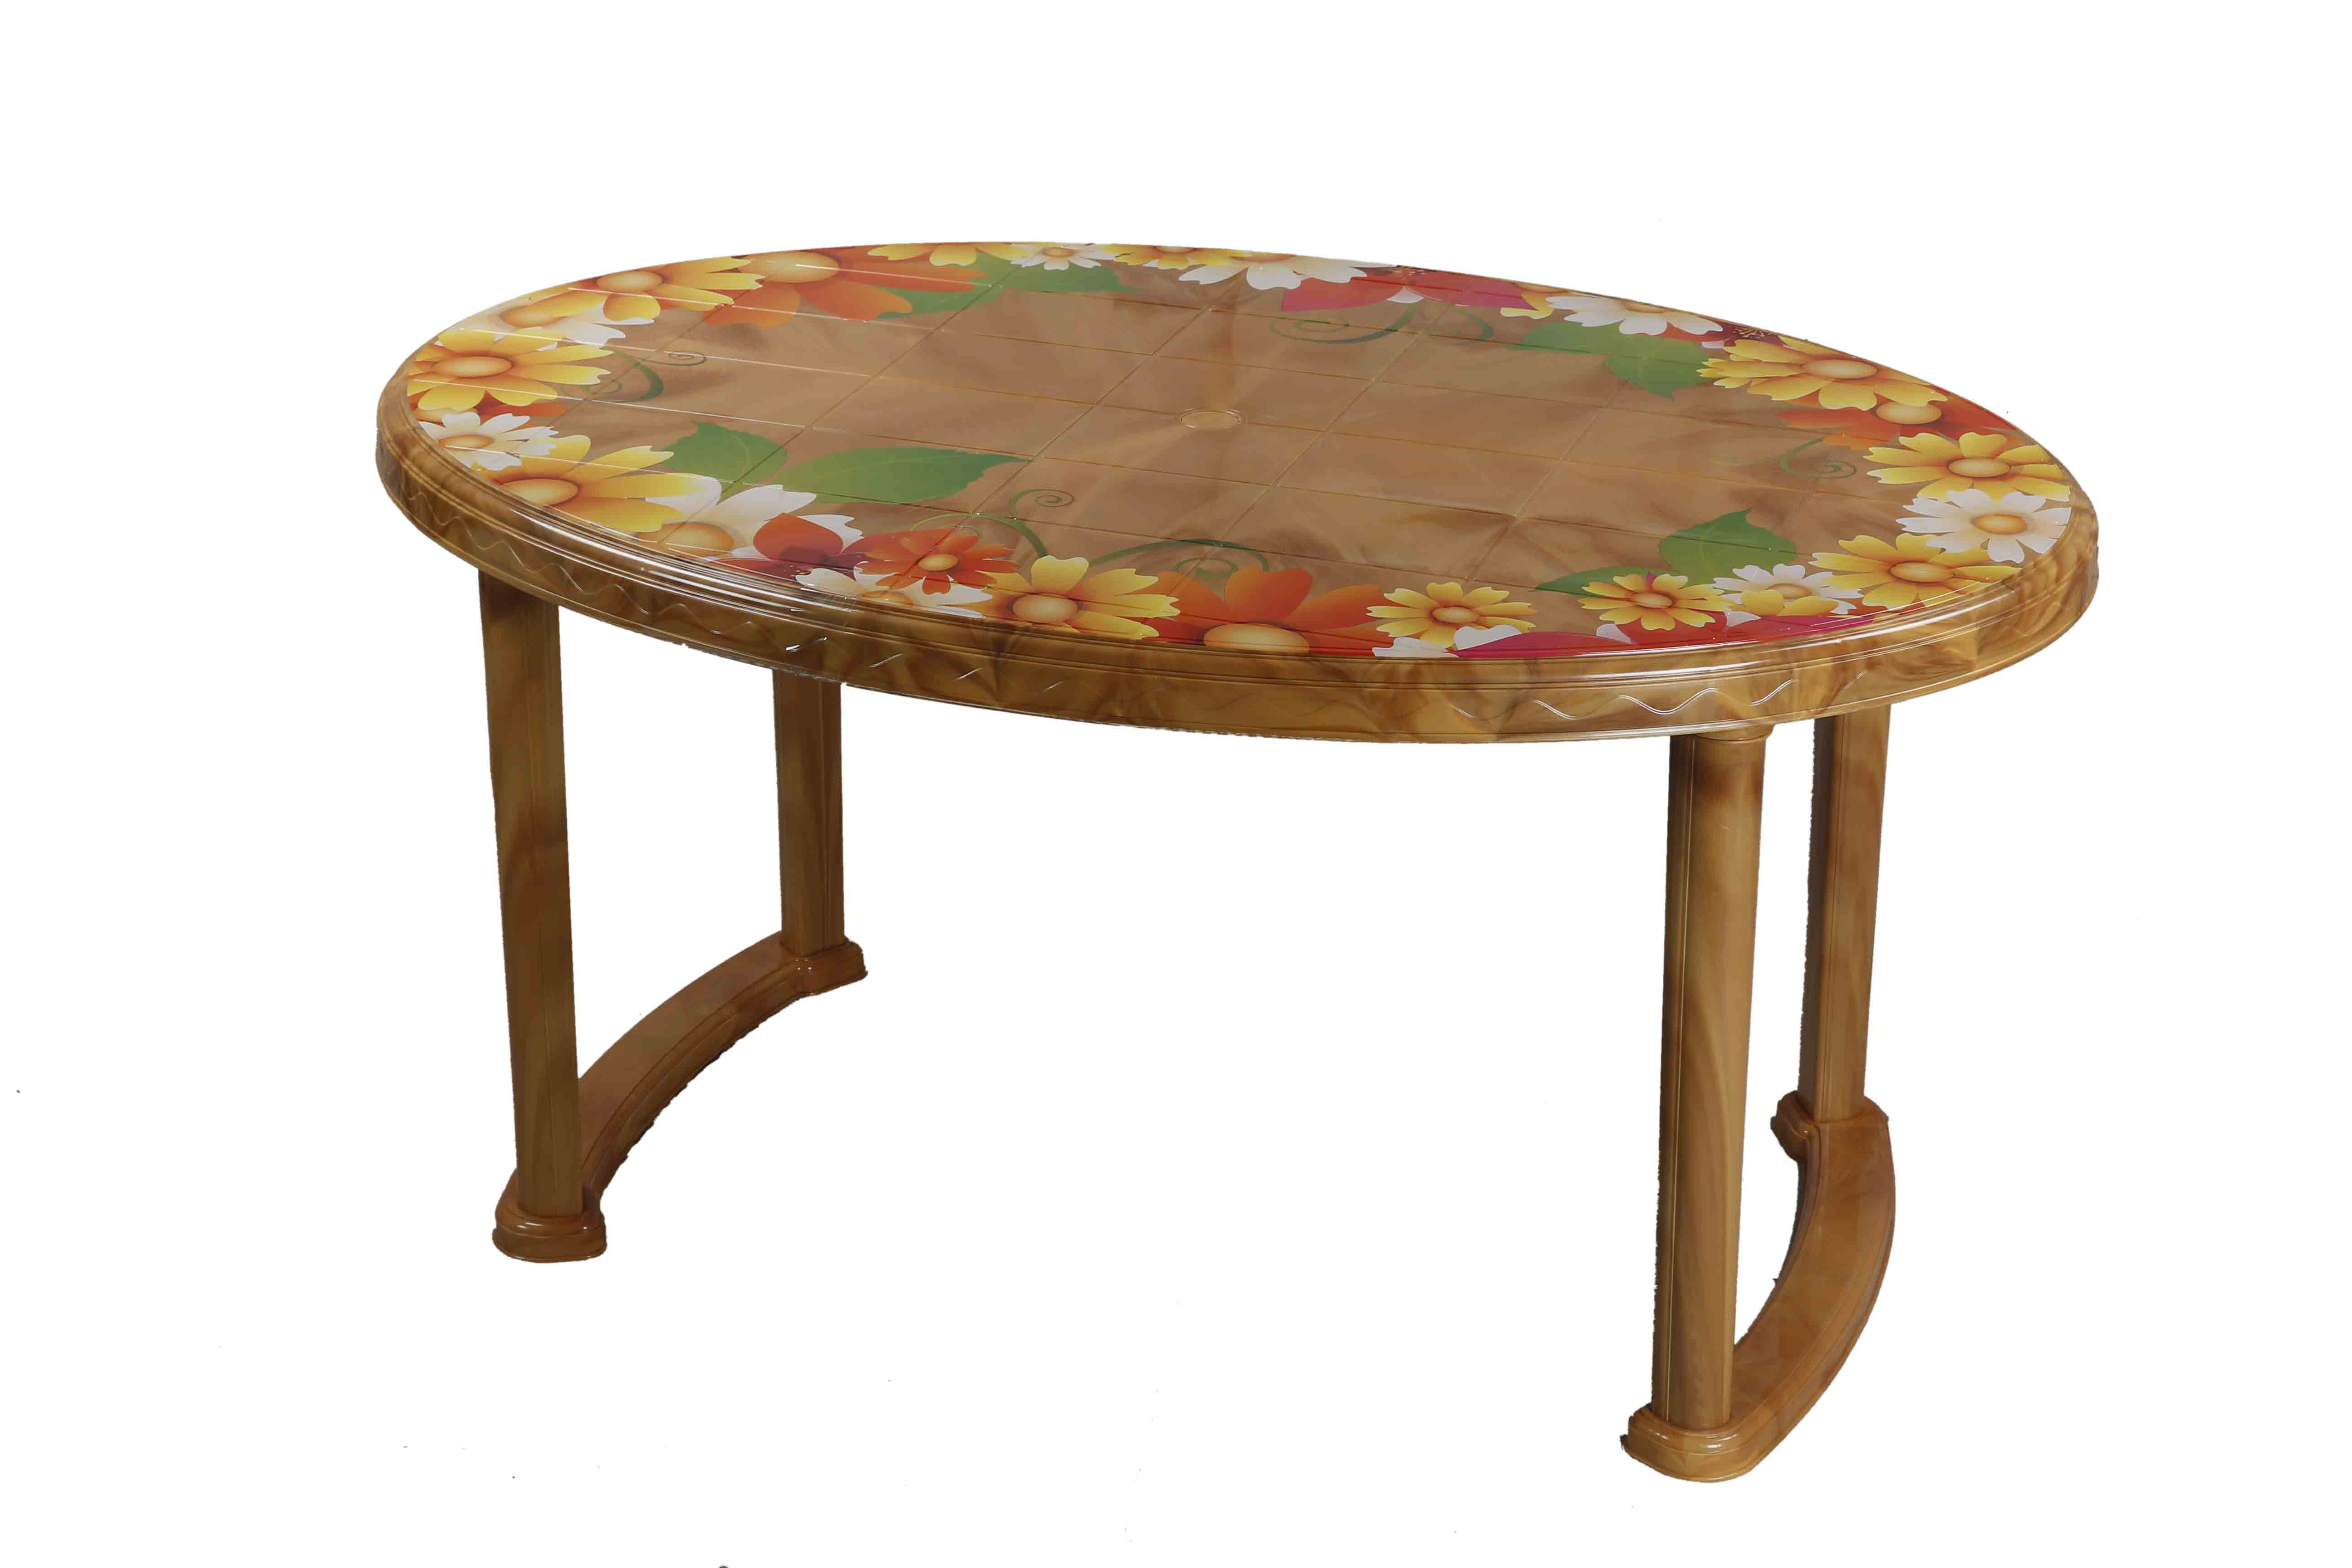 Dining Table 6 Seat Oval P/L Printed Sunflower -SW